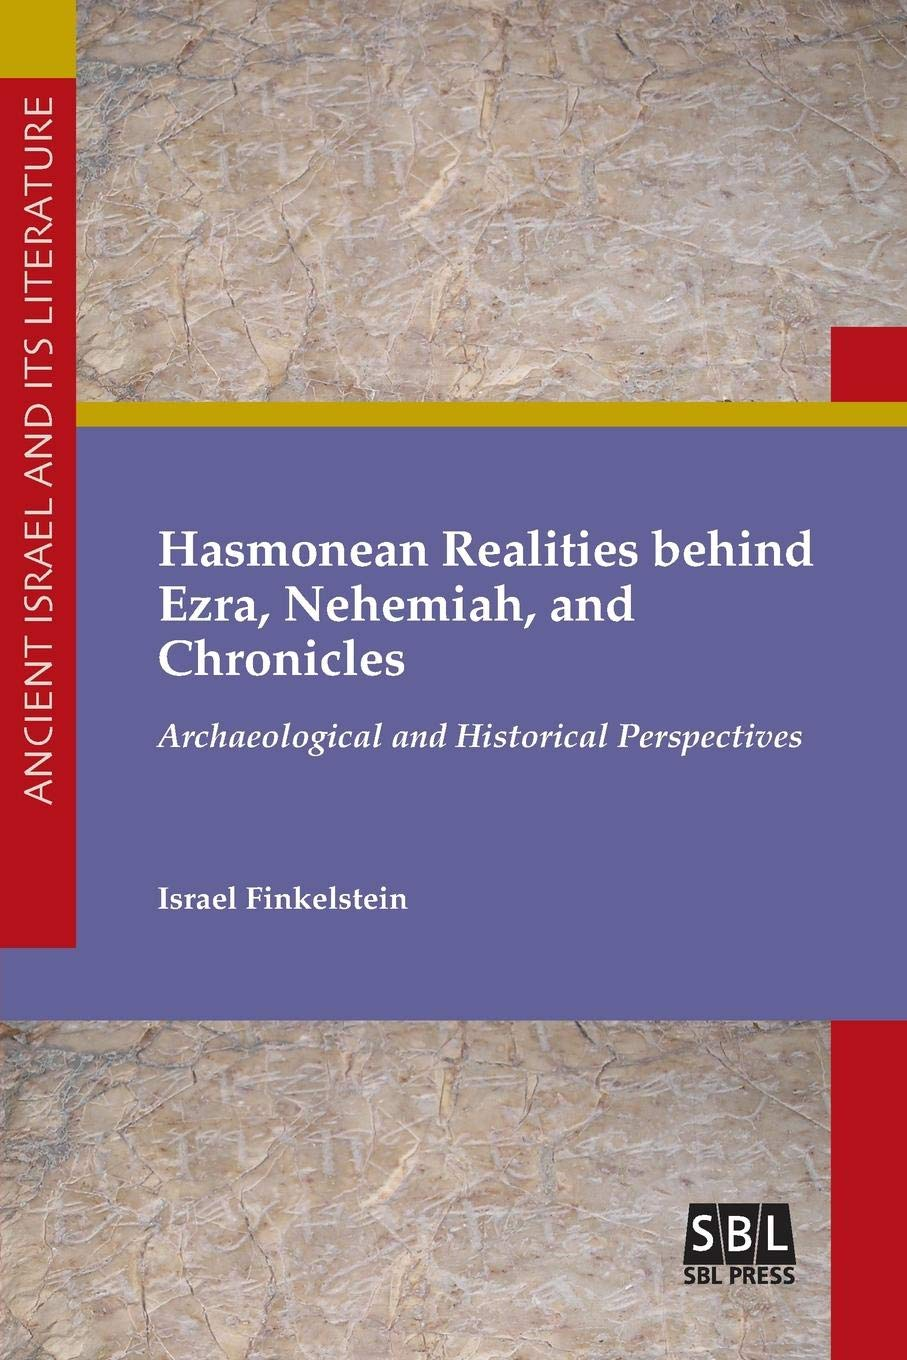 FINKELSTEIN, I. Hasmonean Realities behind Ezra, Nehemiah, and Chronicles: Archaeological and Historical Perspectives. Atlanta: SBL Press, 2018, 222 p.